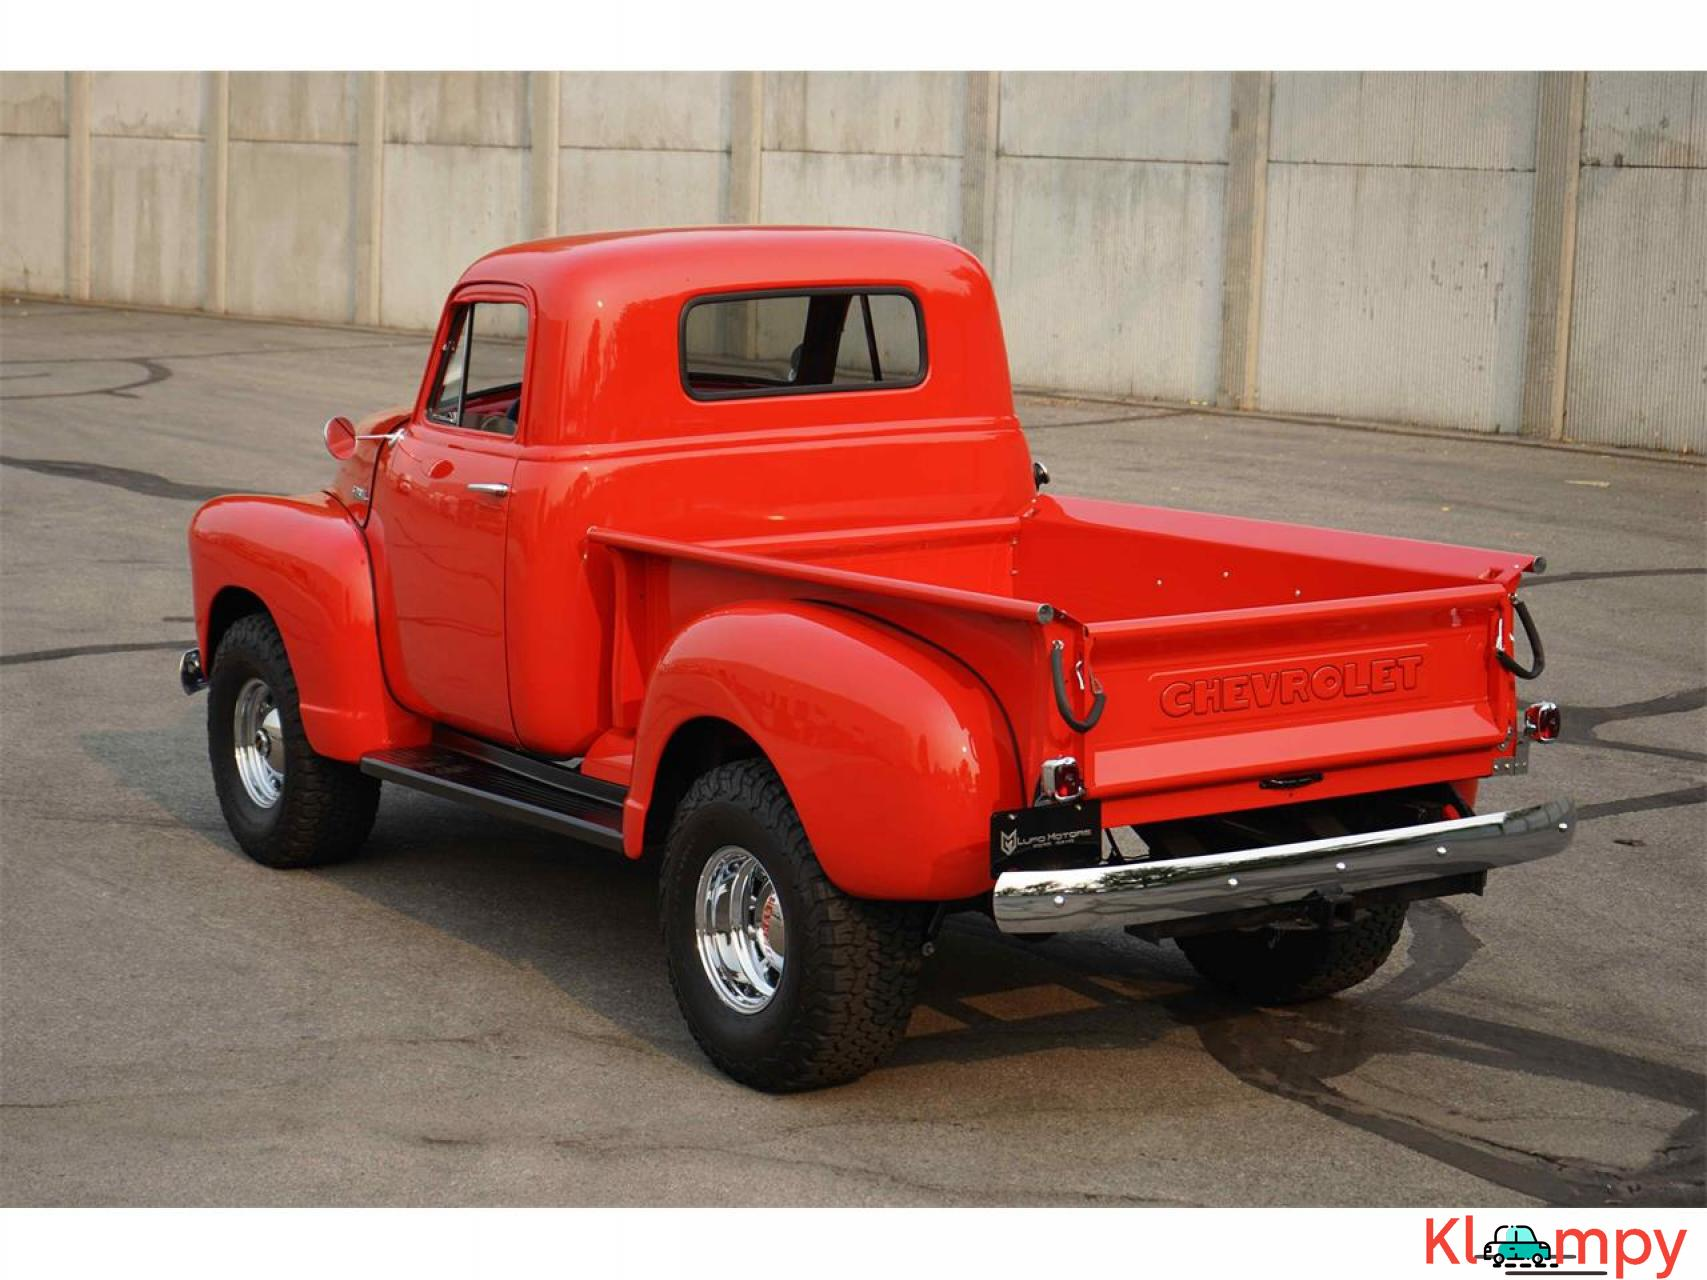 1951 Chevrolet 3100 350 V8 with a B&M Supercharger - 5/17